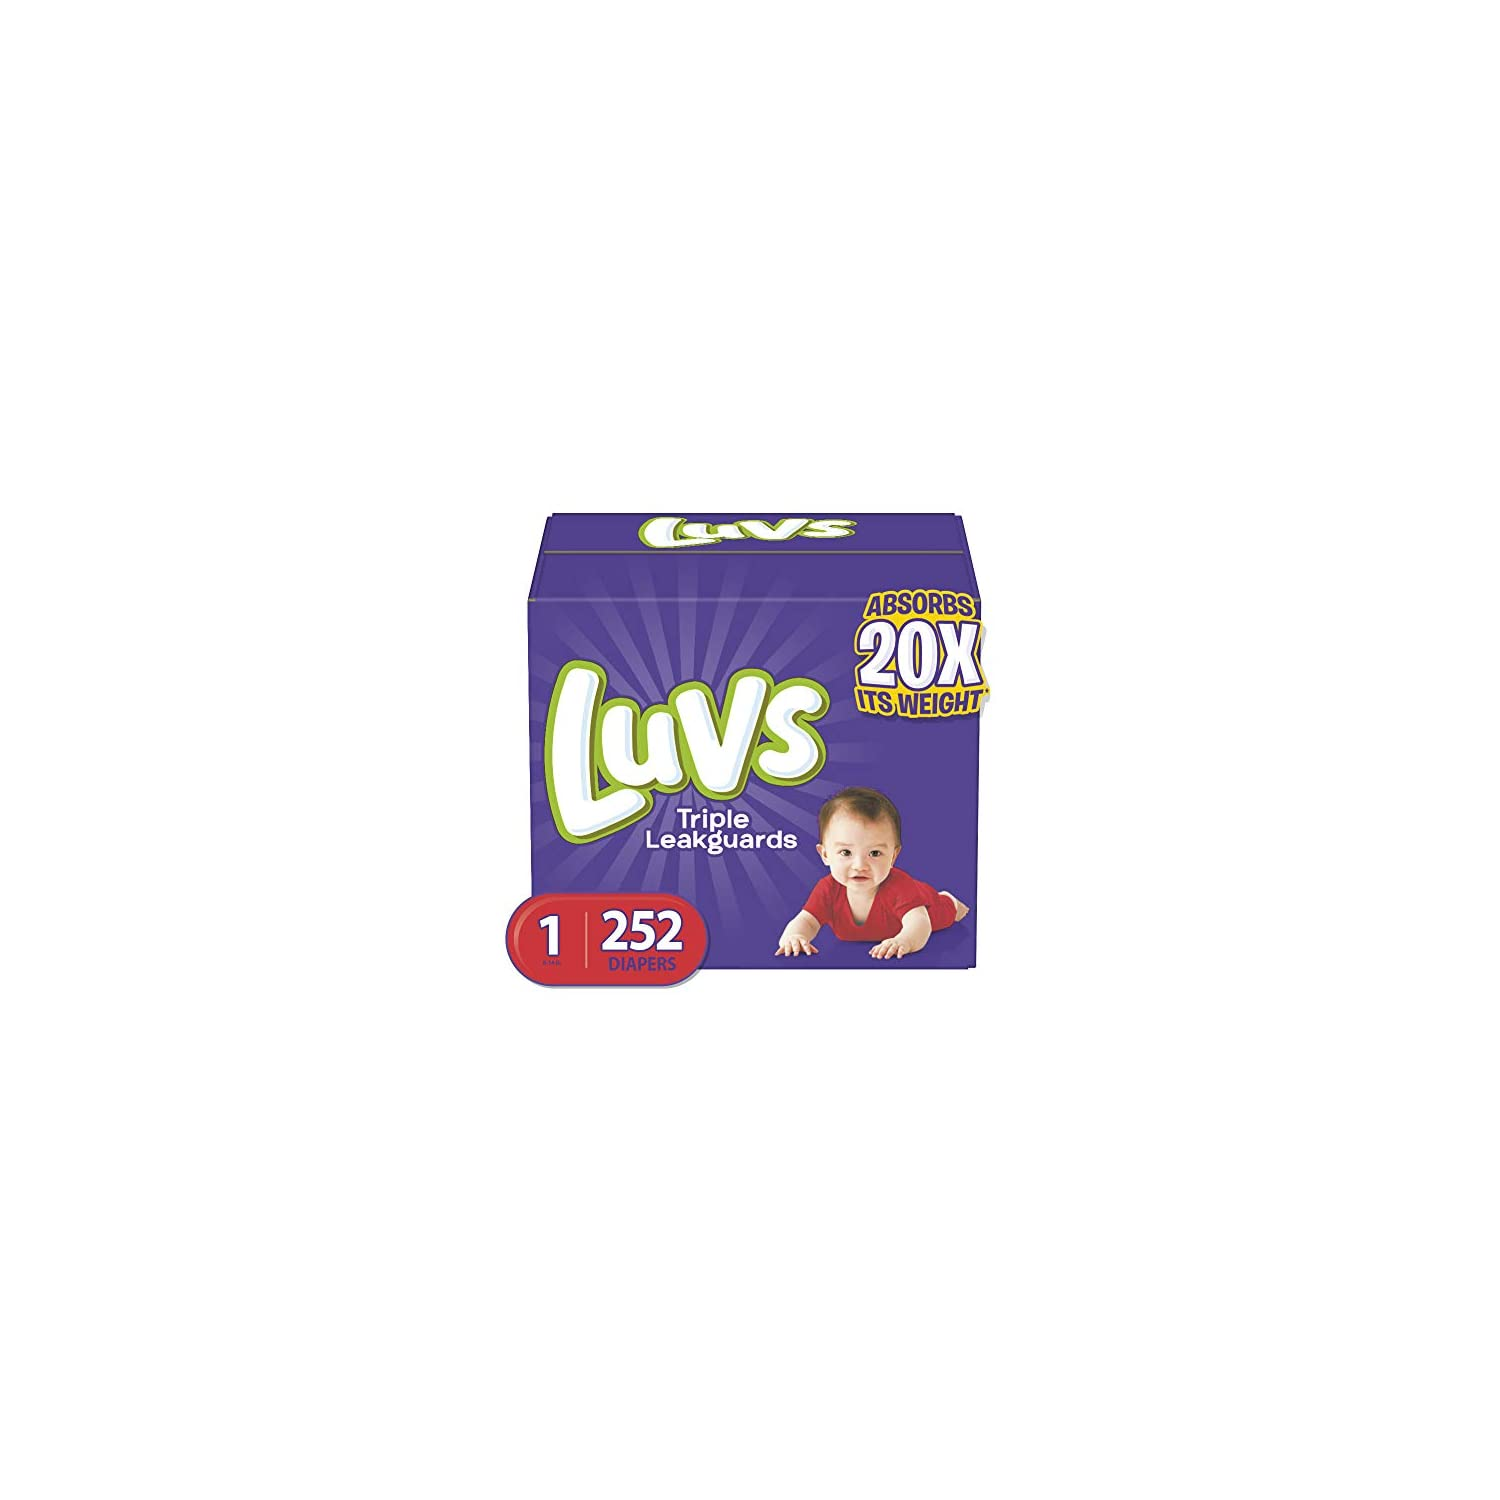 Diapers Size 2, 228 Count – Luvs Ultra Leakguards Disposable Baby Diapers, ONE MONTH SUPPLY (Packaging May Vary)